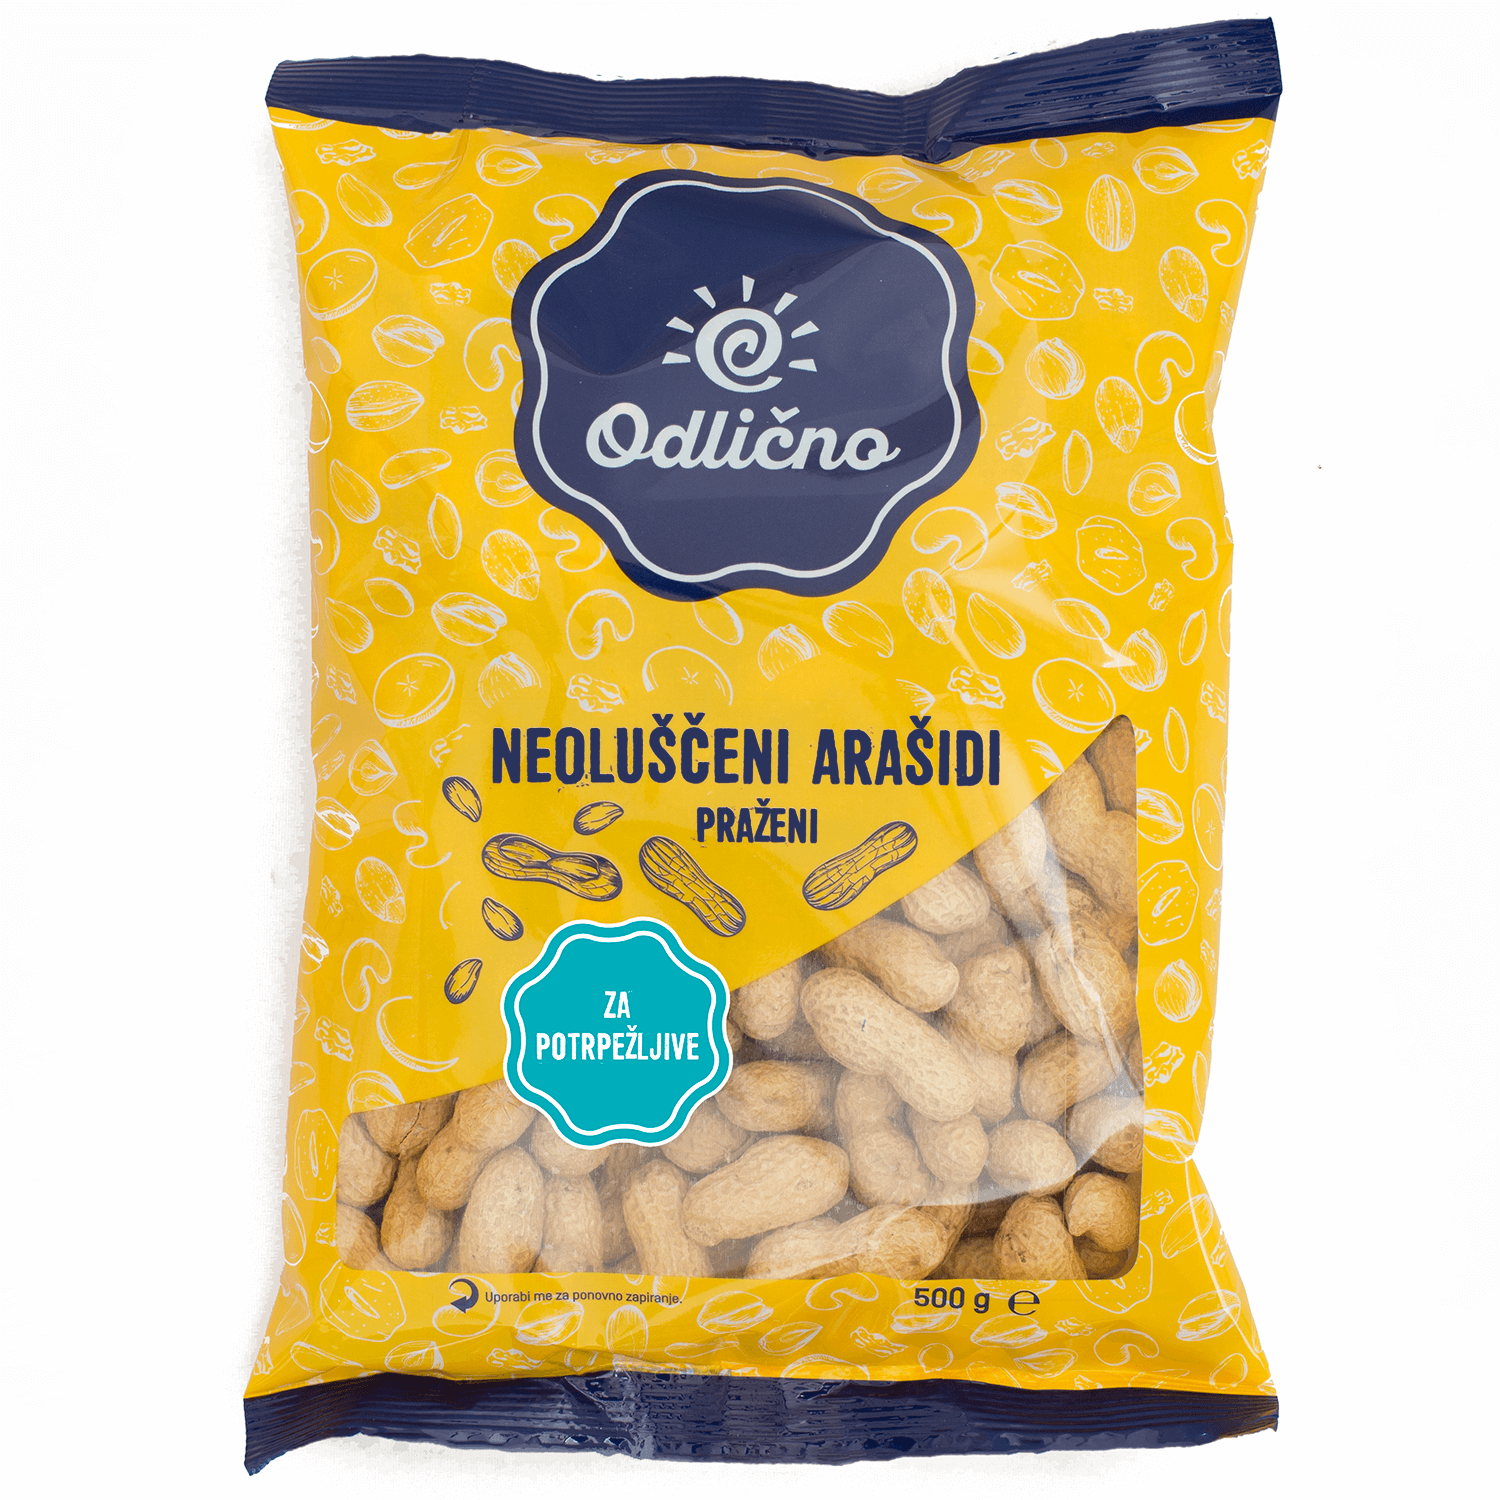 Roasted unshelled Peanuts Odlično, 500 g